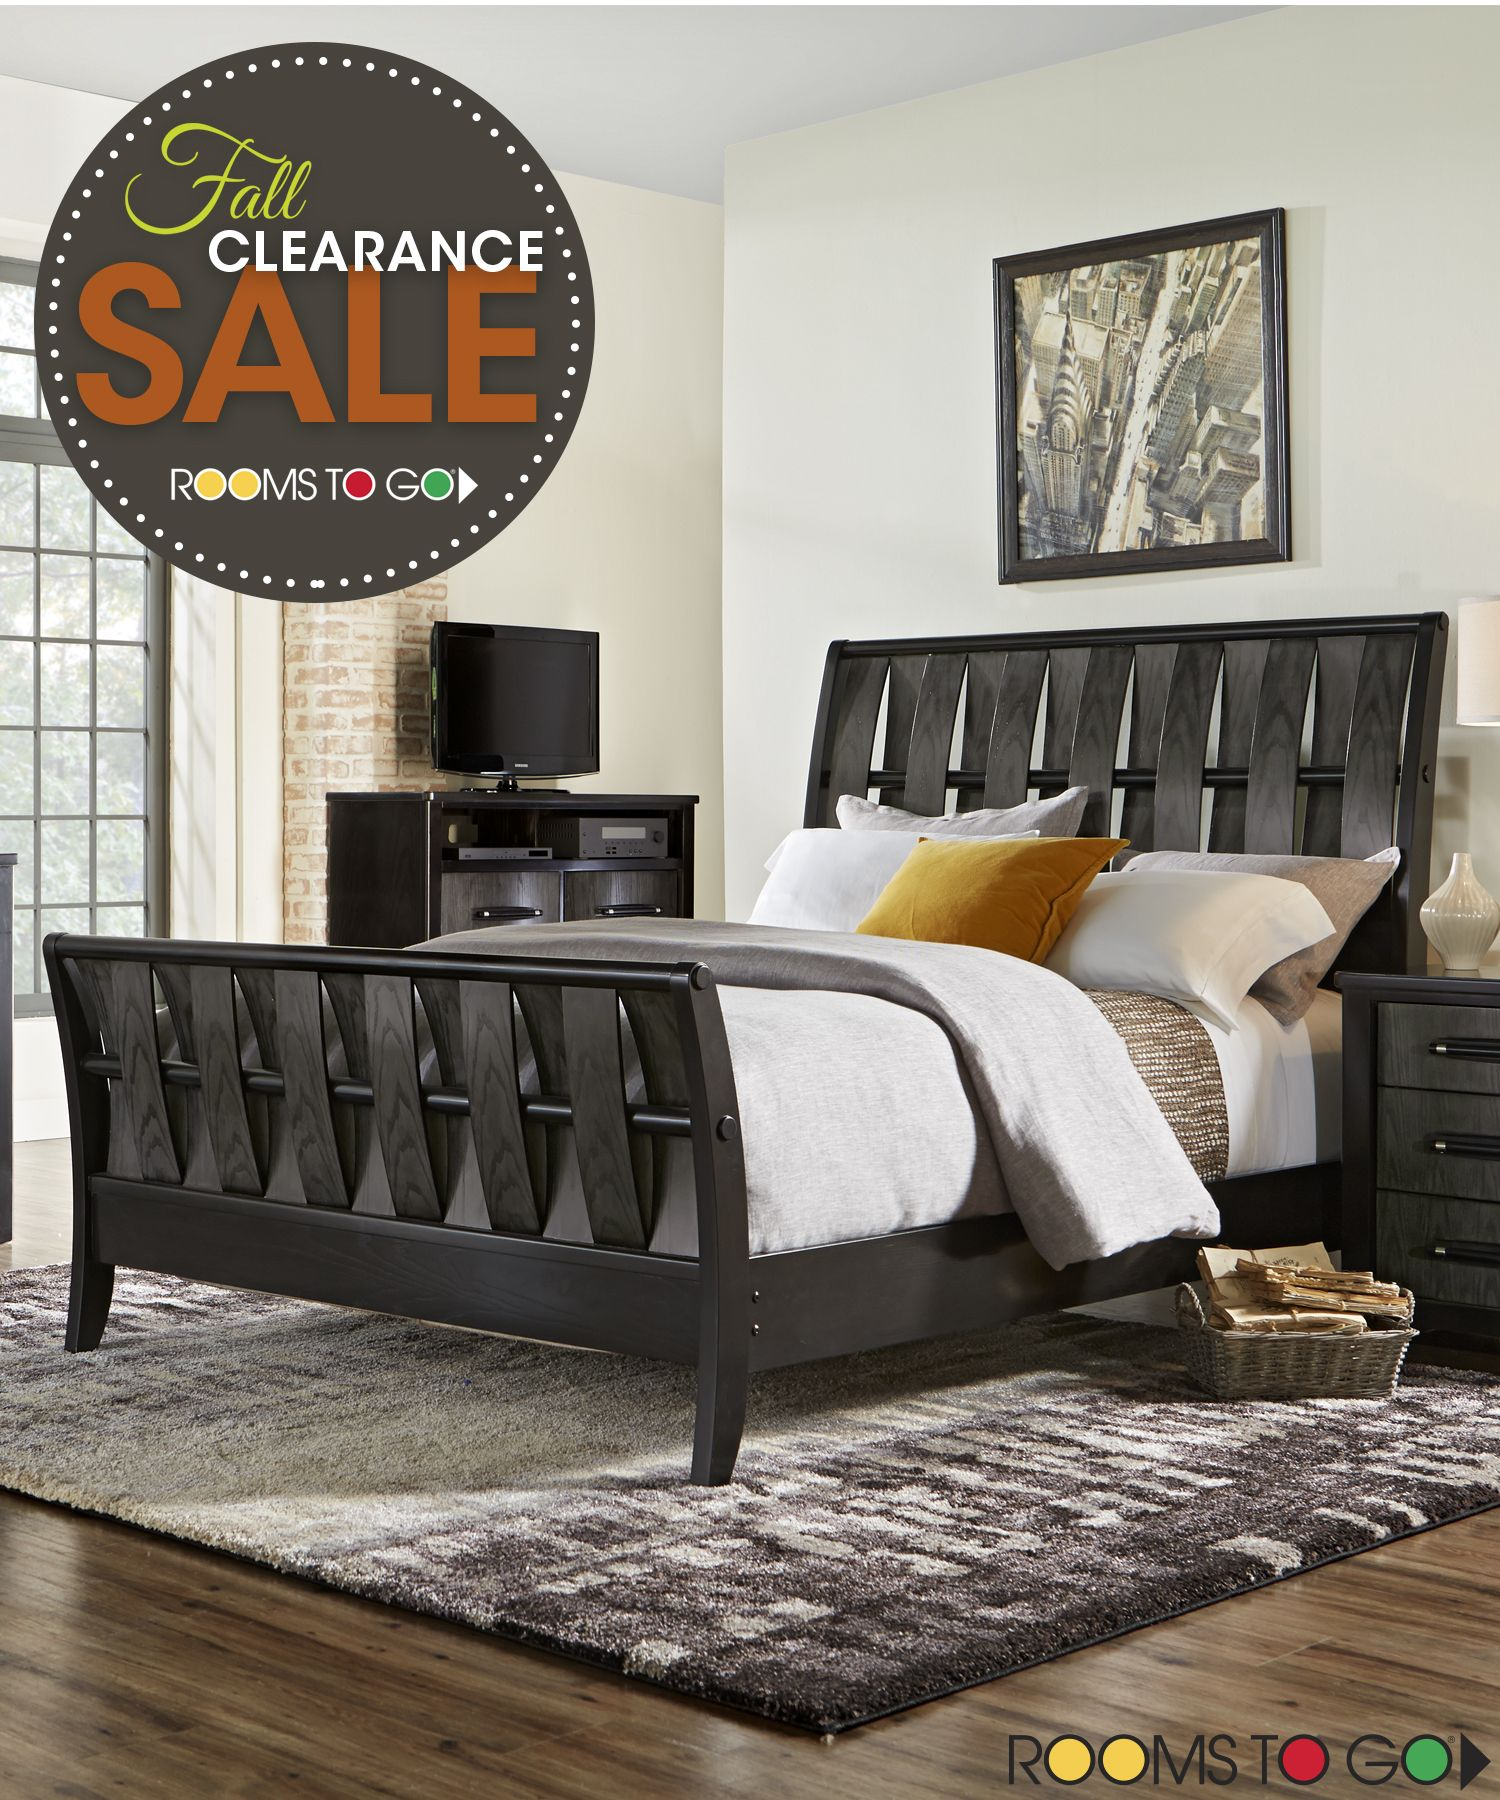 Room To Go Furniture: Visit Rooms To Go Now During Our Fall Clearance Sales